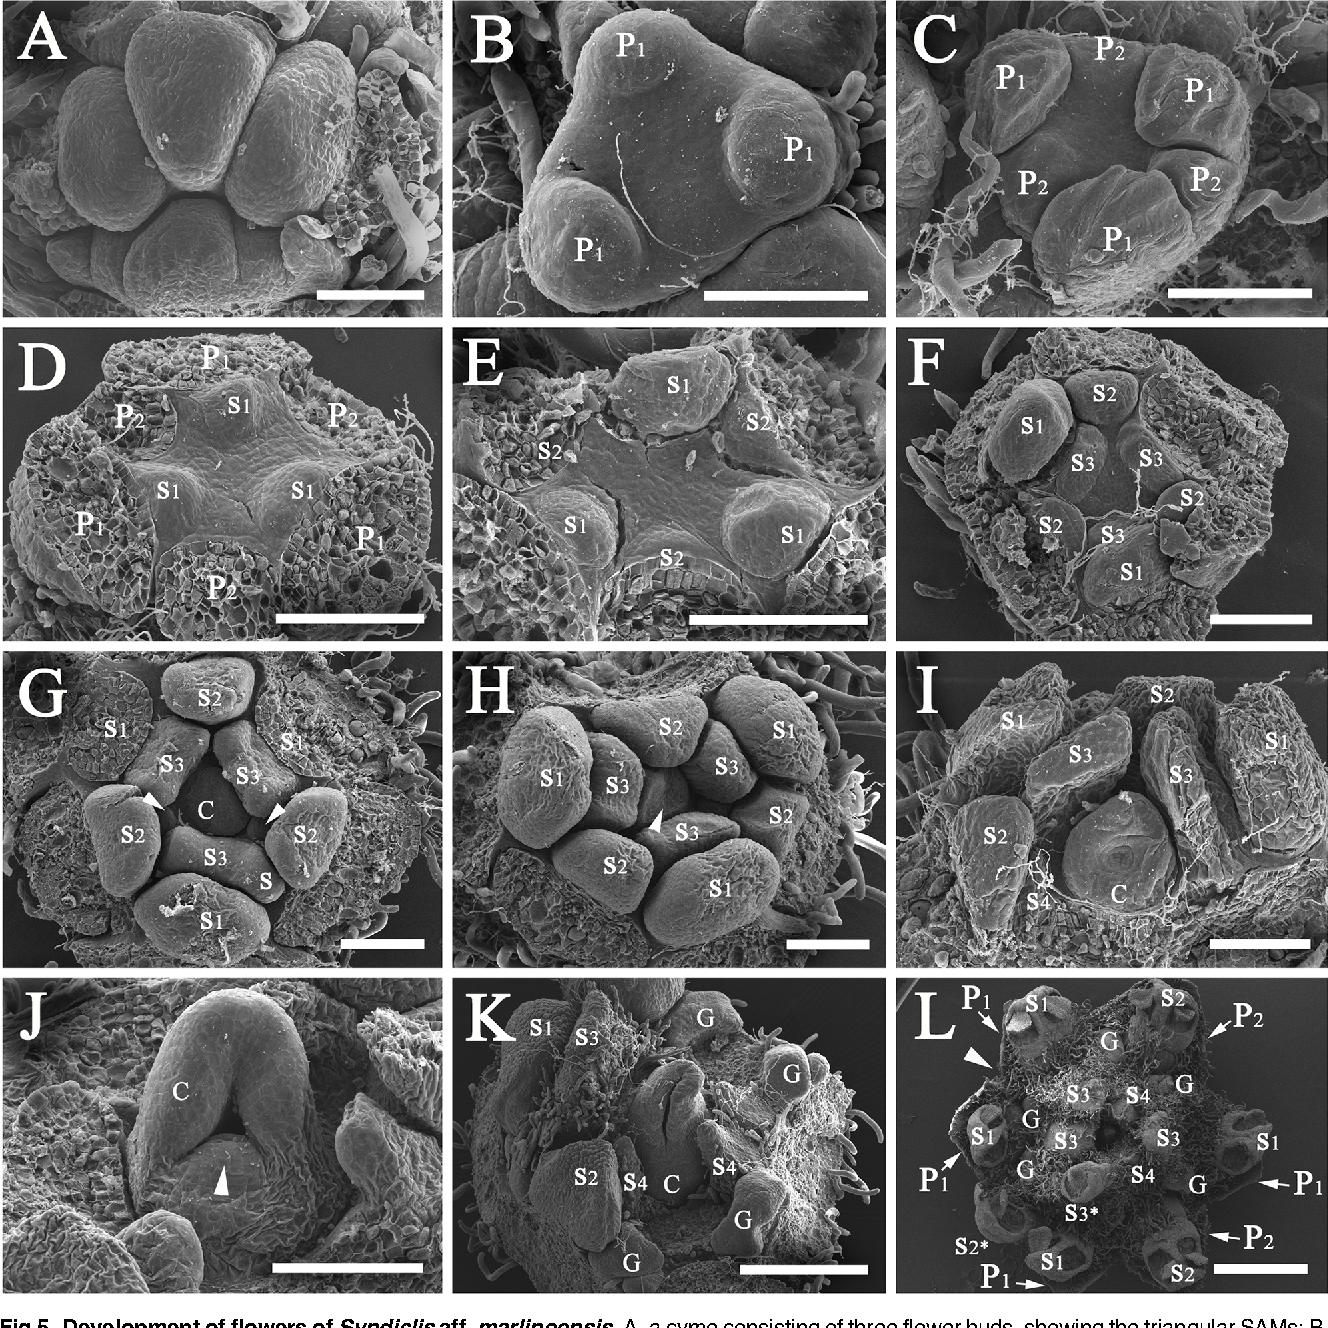 Fig 5. Development of flowers of Syndiclis aff. marlipoensis. A, a cyme consisting of three flower buds, showing the triangular SAMs; B, three tepal primordia (P1) initiated at different rates; C, three inner tepal primordia (P2) initiated at different rates; D, three primordia of the first androecial whorl (S1) initiated; E, three primordia of the second androecial whorl (S2) initiated; F, three primordia of the third androecial whorl (S3) initiated; G, the carpel primordium initiated, arrow pointing to the staminodial primordium of the fourth androecial whorl (S4), a stamen of the third androecial whorl fused to a supernumerary stamen of the second androecial whorl; H–I, the lateral side of the carpel with concavity; J, the carpel flanks approximating one another, arrow indicating the ovular protuberance; K, fusion of the carpel flanks resulting in the enclosure of the ovule; L, a flower bearing seven tepals and seven fertile stamens, S2* and S3* representing two one-locular stamens, arrow marking the missing orthostichy leading to the loss of a tepal of the inner tepal whorl (P2), a stamen of the second androecial whorl (S2), and a staminode of the fourth androecial whorl (S4). Scale bars: A–J: bar = 100 μm; K: bar = 300 μm; L = 1 mm. Abbreviations. C, carpel; G, gland; P1, the outer whorl of tepals; P2, the inner whorl of tepals; S, a supernumerary staminal organ; S1, the first/outermost whorl of stamens; S2, the second whorl of stamens; S3, the third androecial whorl including either fertile stamens or staminodes; S4, the fourth androecial whorl including staminodes.